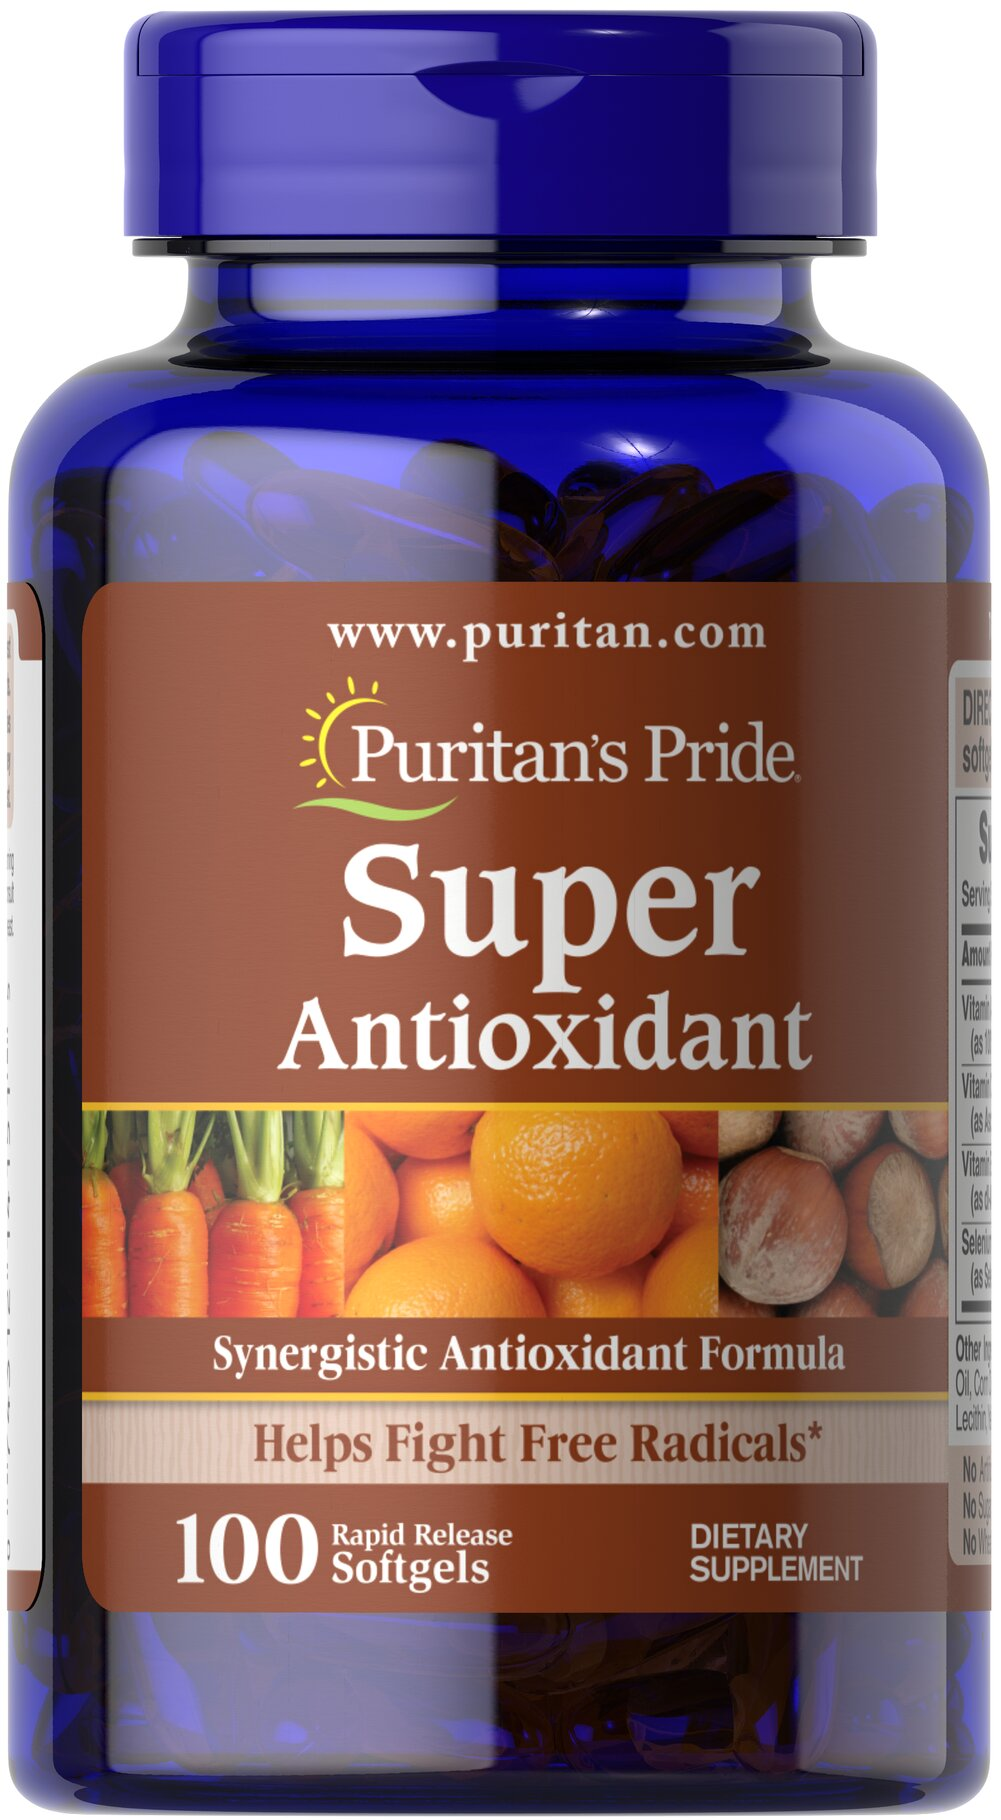 Super Antioxidant Formula** <p>The essential nutrients in our Super Antioxidant Formula are some of the best antioxidants available for fighting free radicals.** Free radicals can be produced from things like car exhaust, smoking, even your own body — plus they contribute to oxidative stress, which can lead to premature aging.** Vitamins A, C, and E and the mineral, Selenium, combat the harmful effects of these free radicals.**</p> 100 Softgels  $27.99